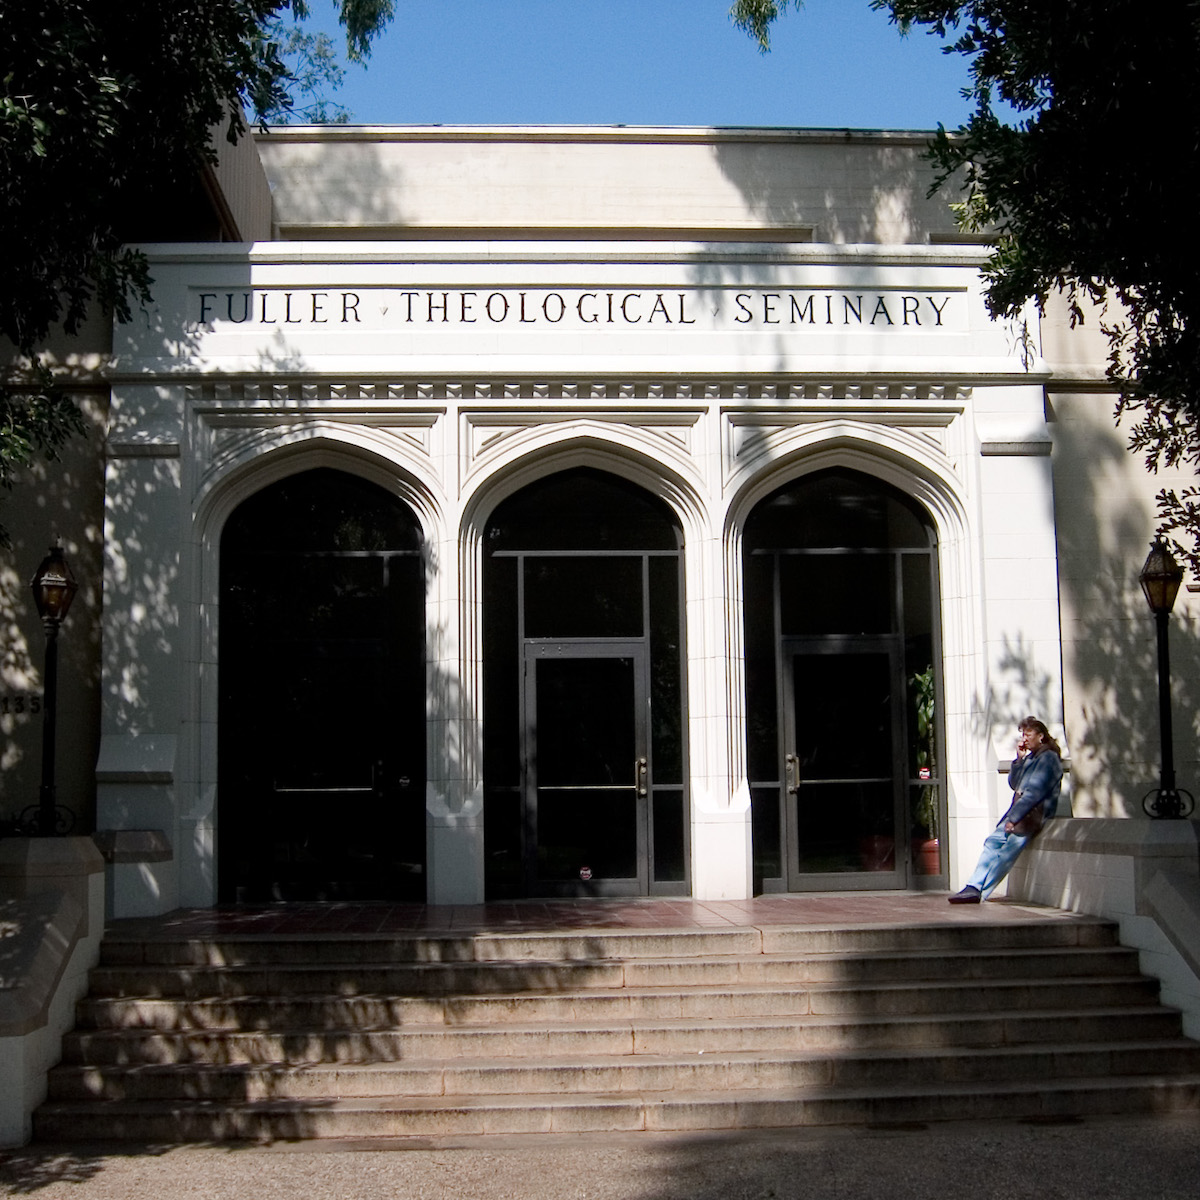 Fuller Theological Seminary by bill_comstock (2007)